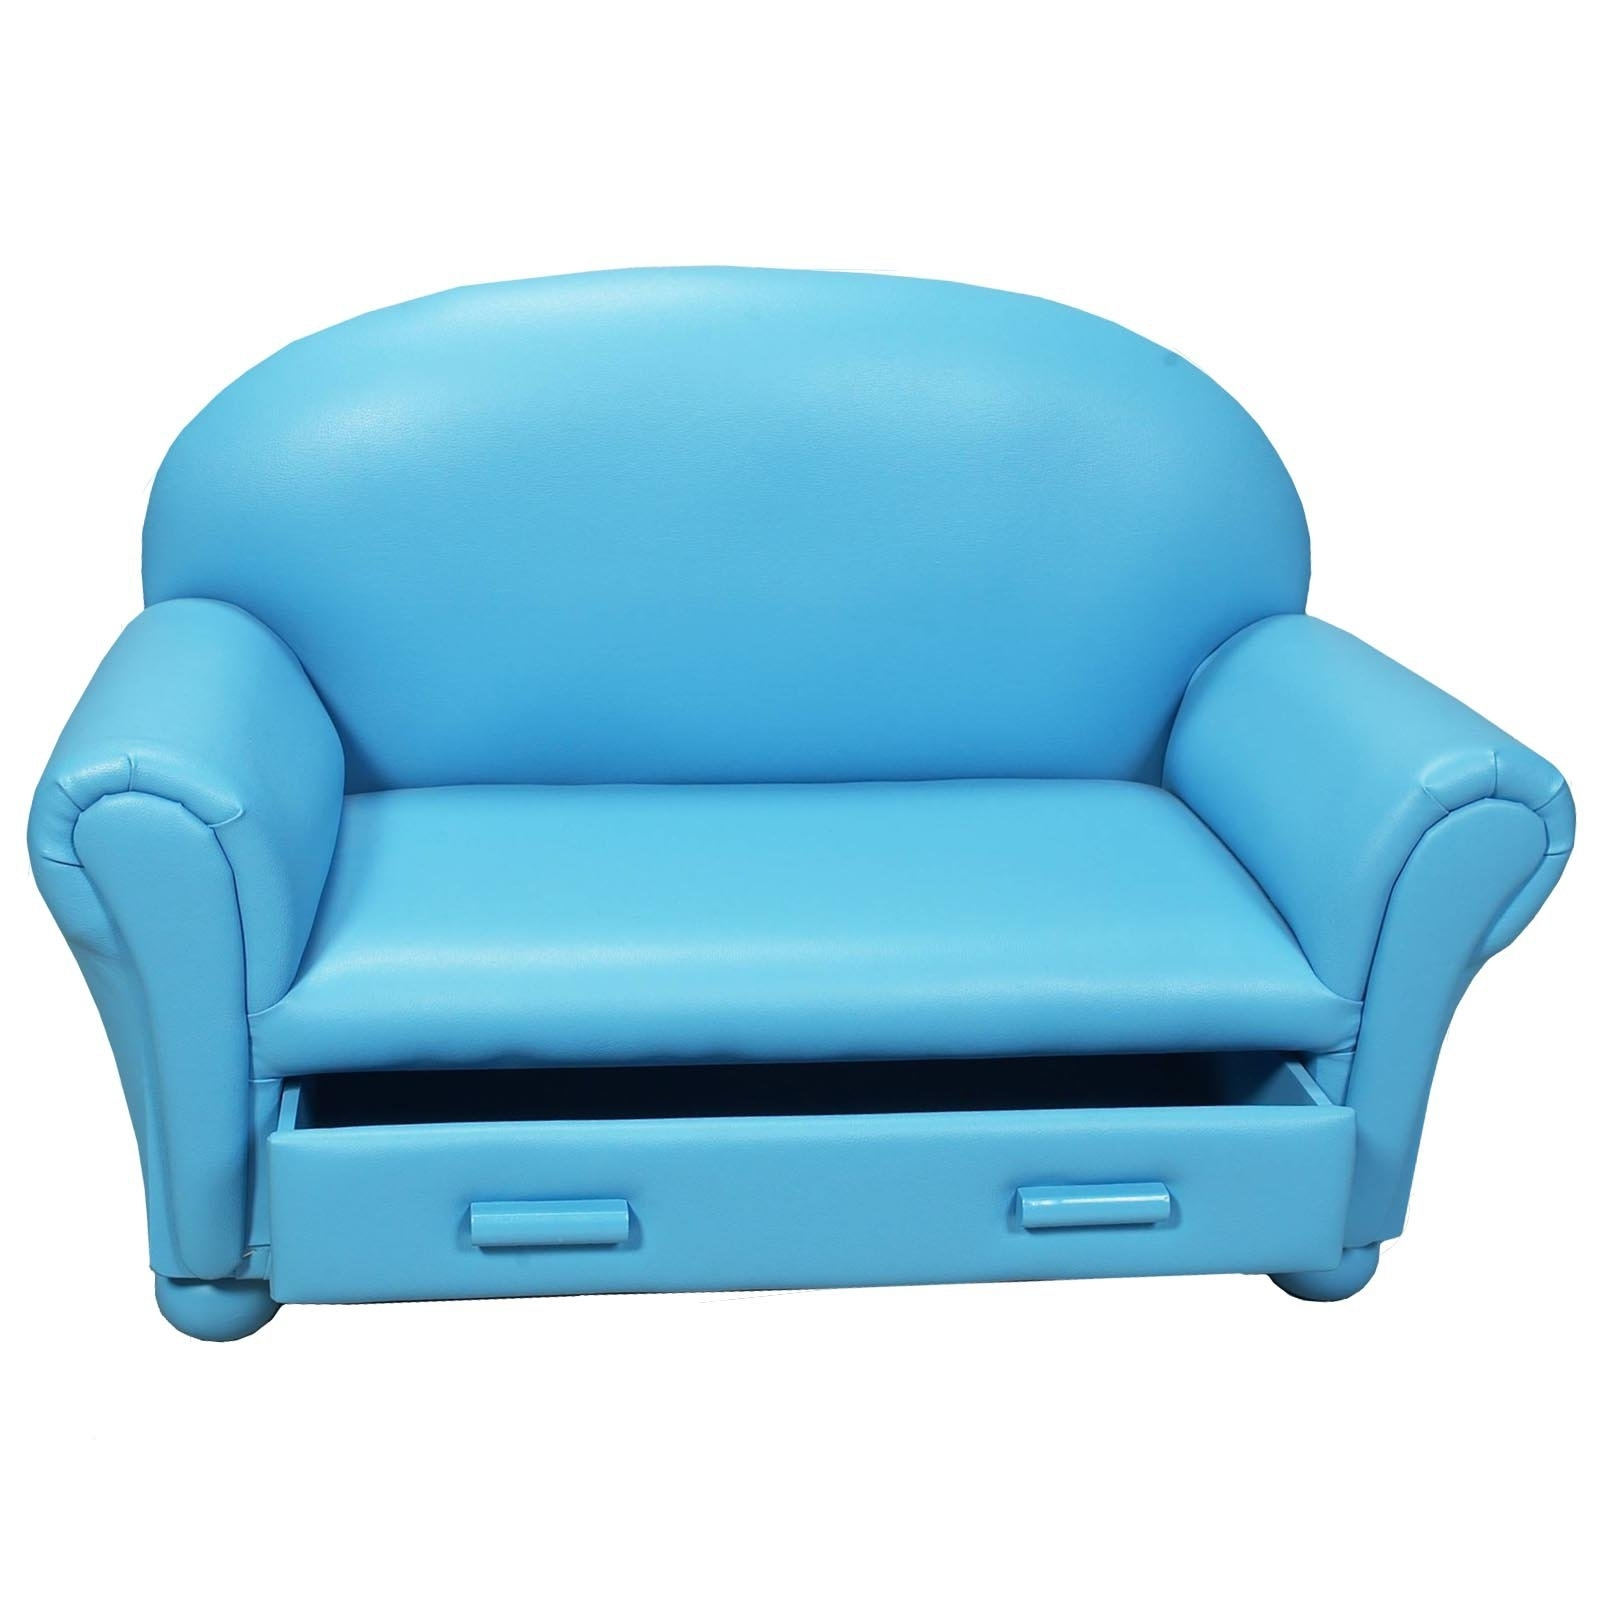 Childrens Sofa With Storage Drawer – Walmart With Childrens Sofas (Image 2 of 10)